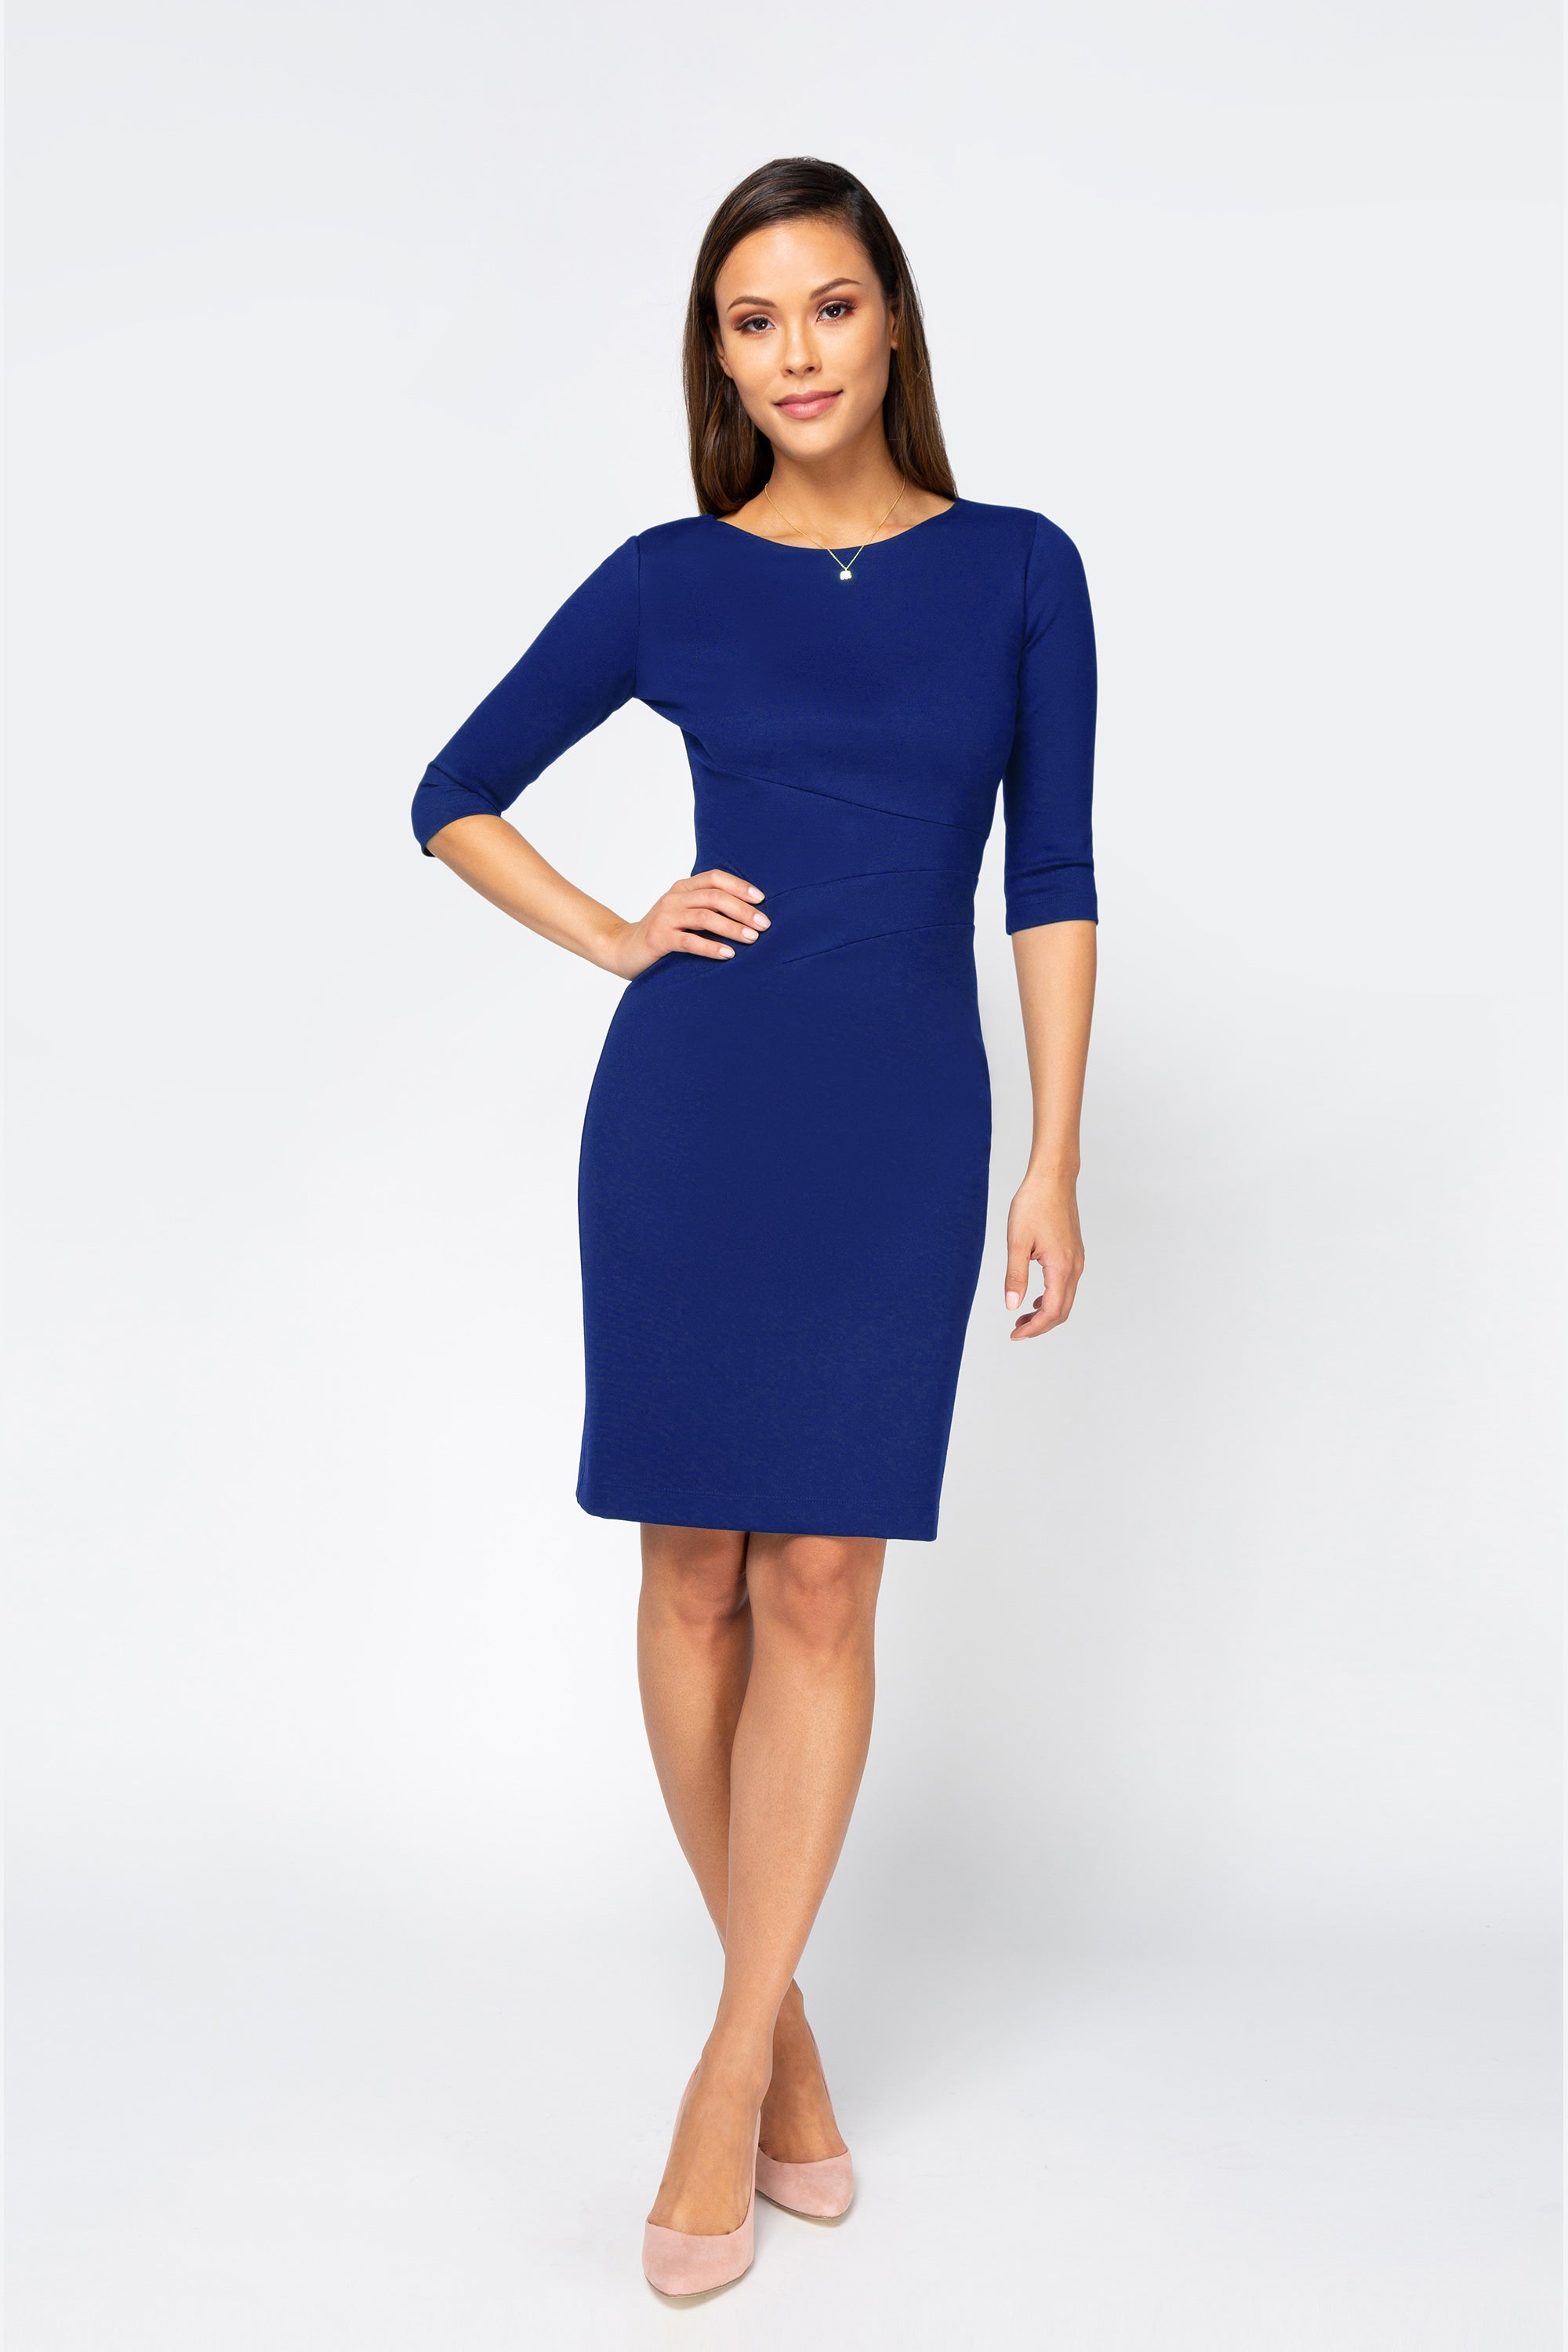 Lydia Dress - Royal Blue